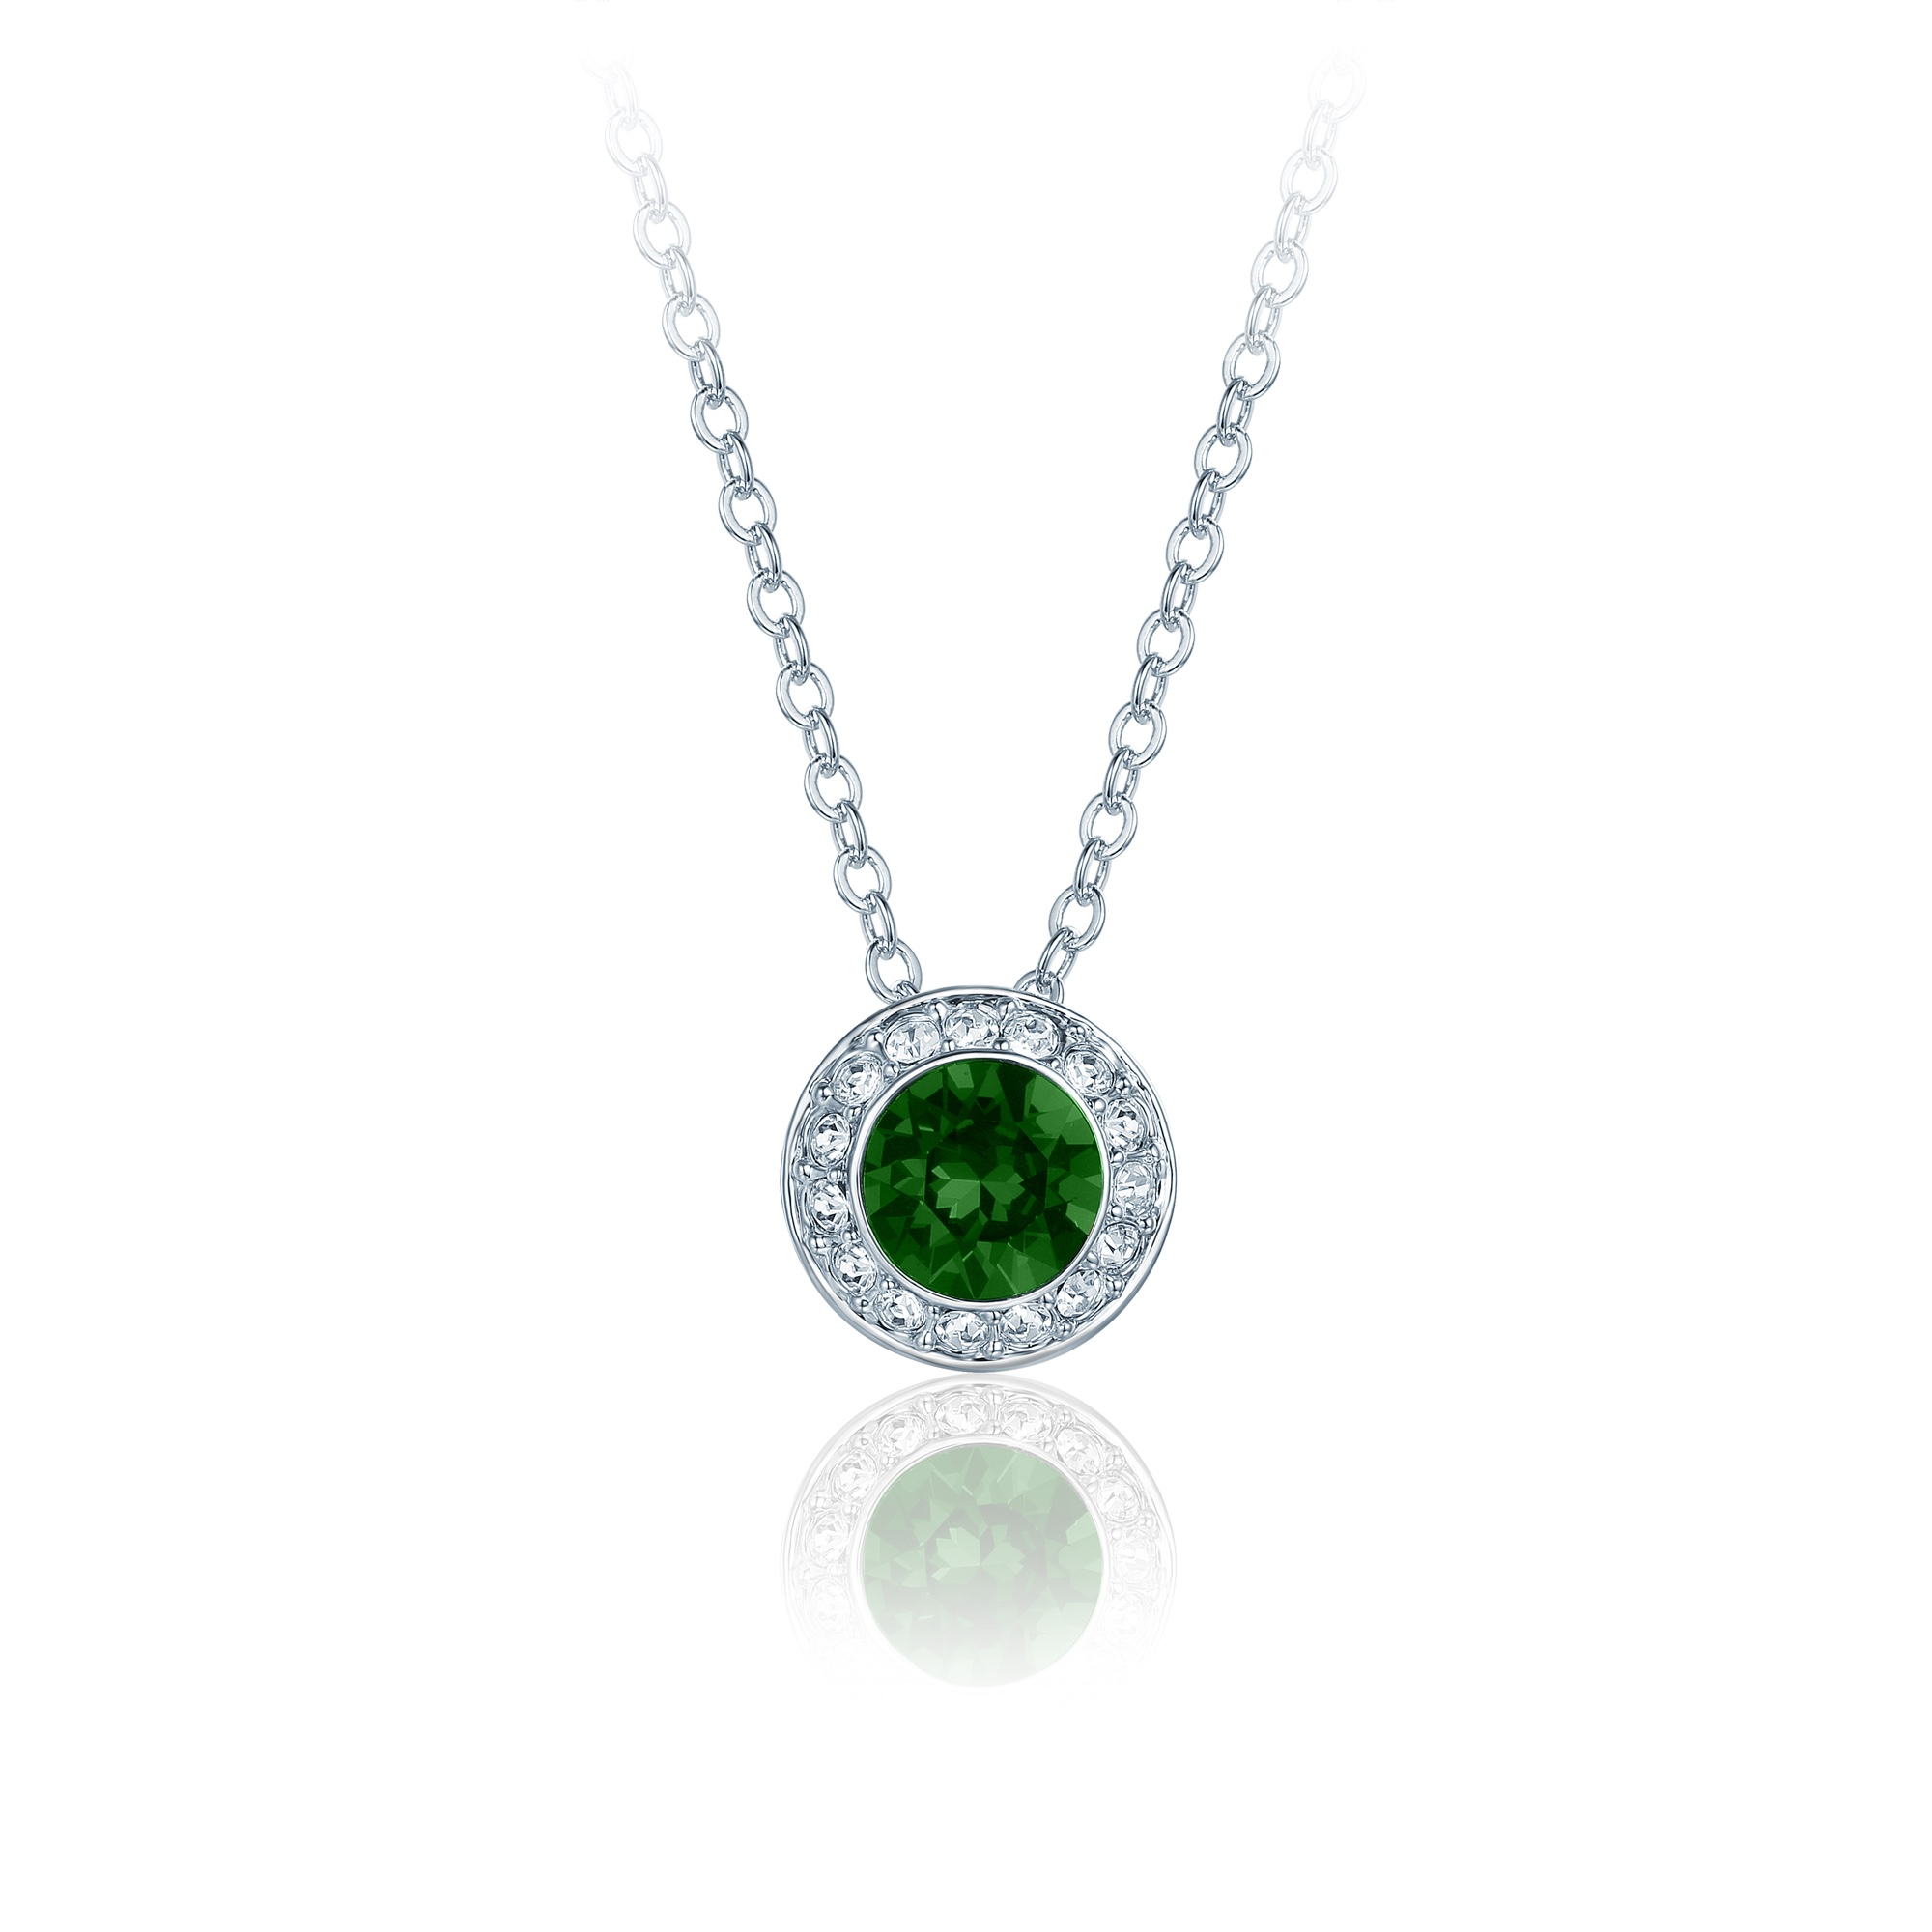 b88f2158e7443 Details about Angelic Pendant Necklace w Emerald Swarovski Crystals Bridal  Wedding MYJS WGP